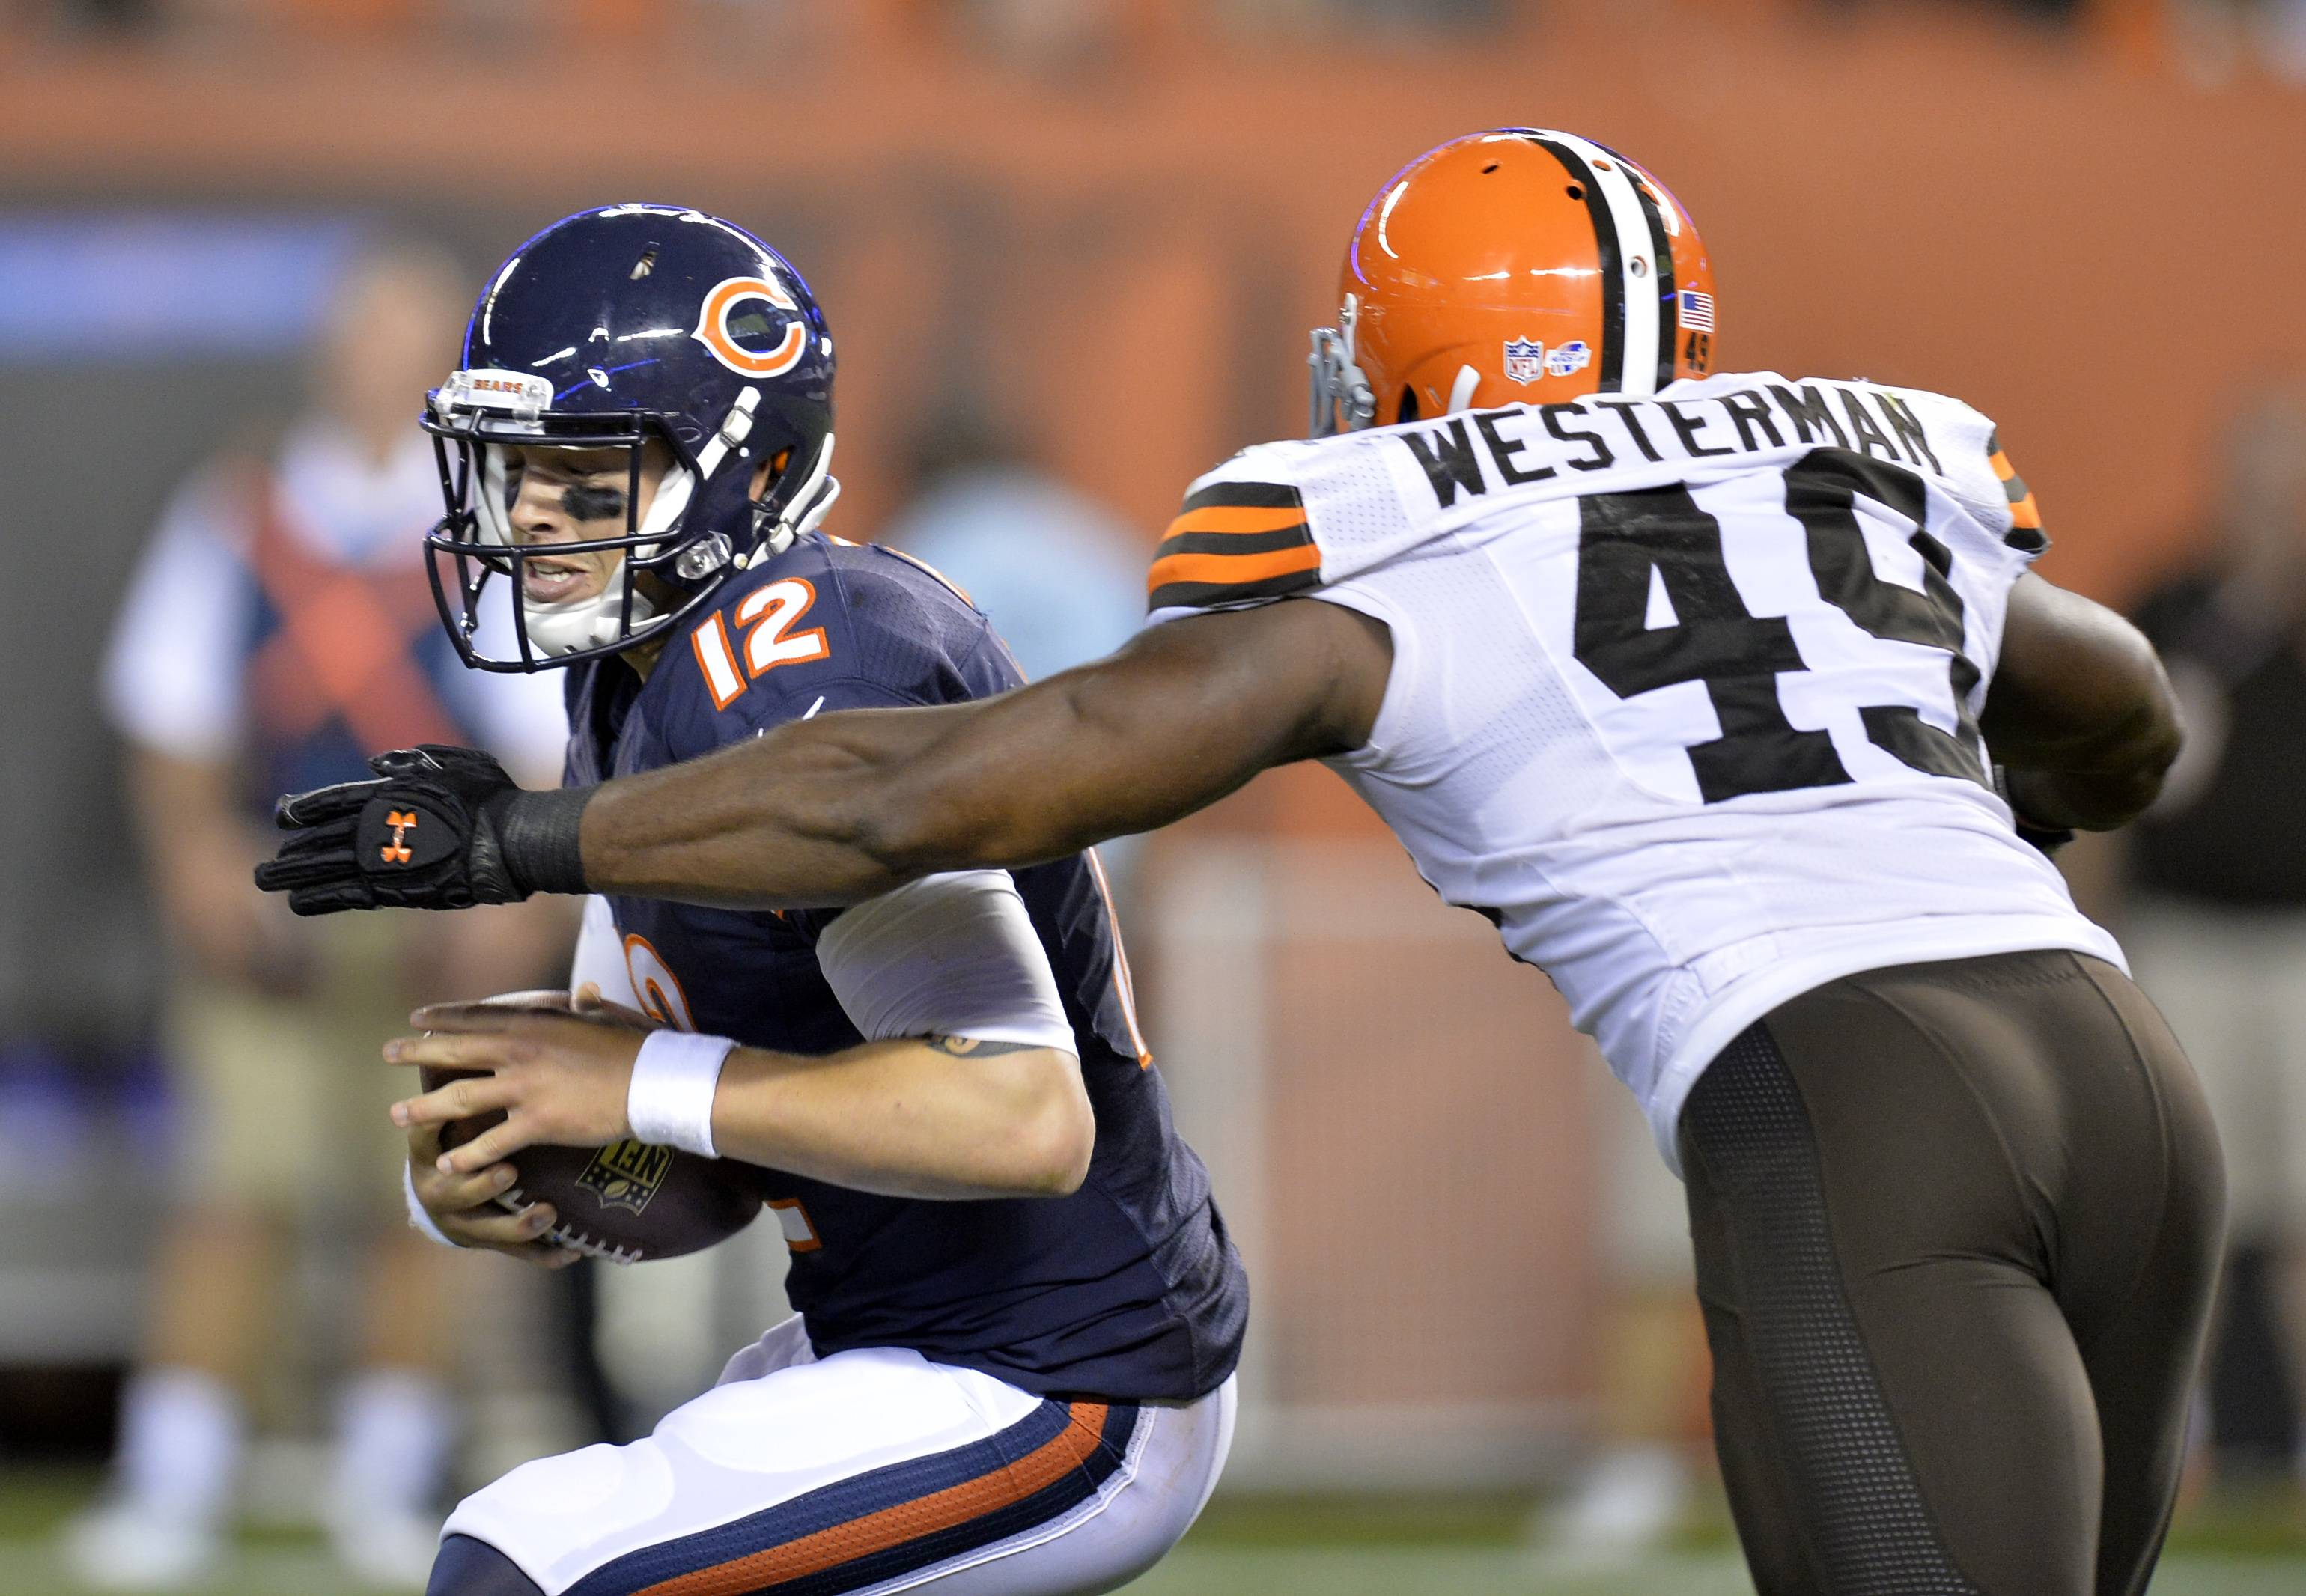 Cleveland Browns linebacker Jamaal Westerman (49) sacks Chicago Bears quarterback David Fales (12) in the fourth quarter.